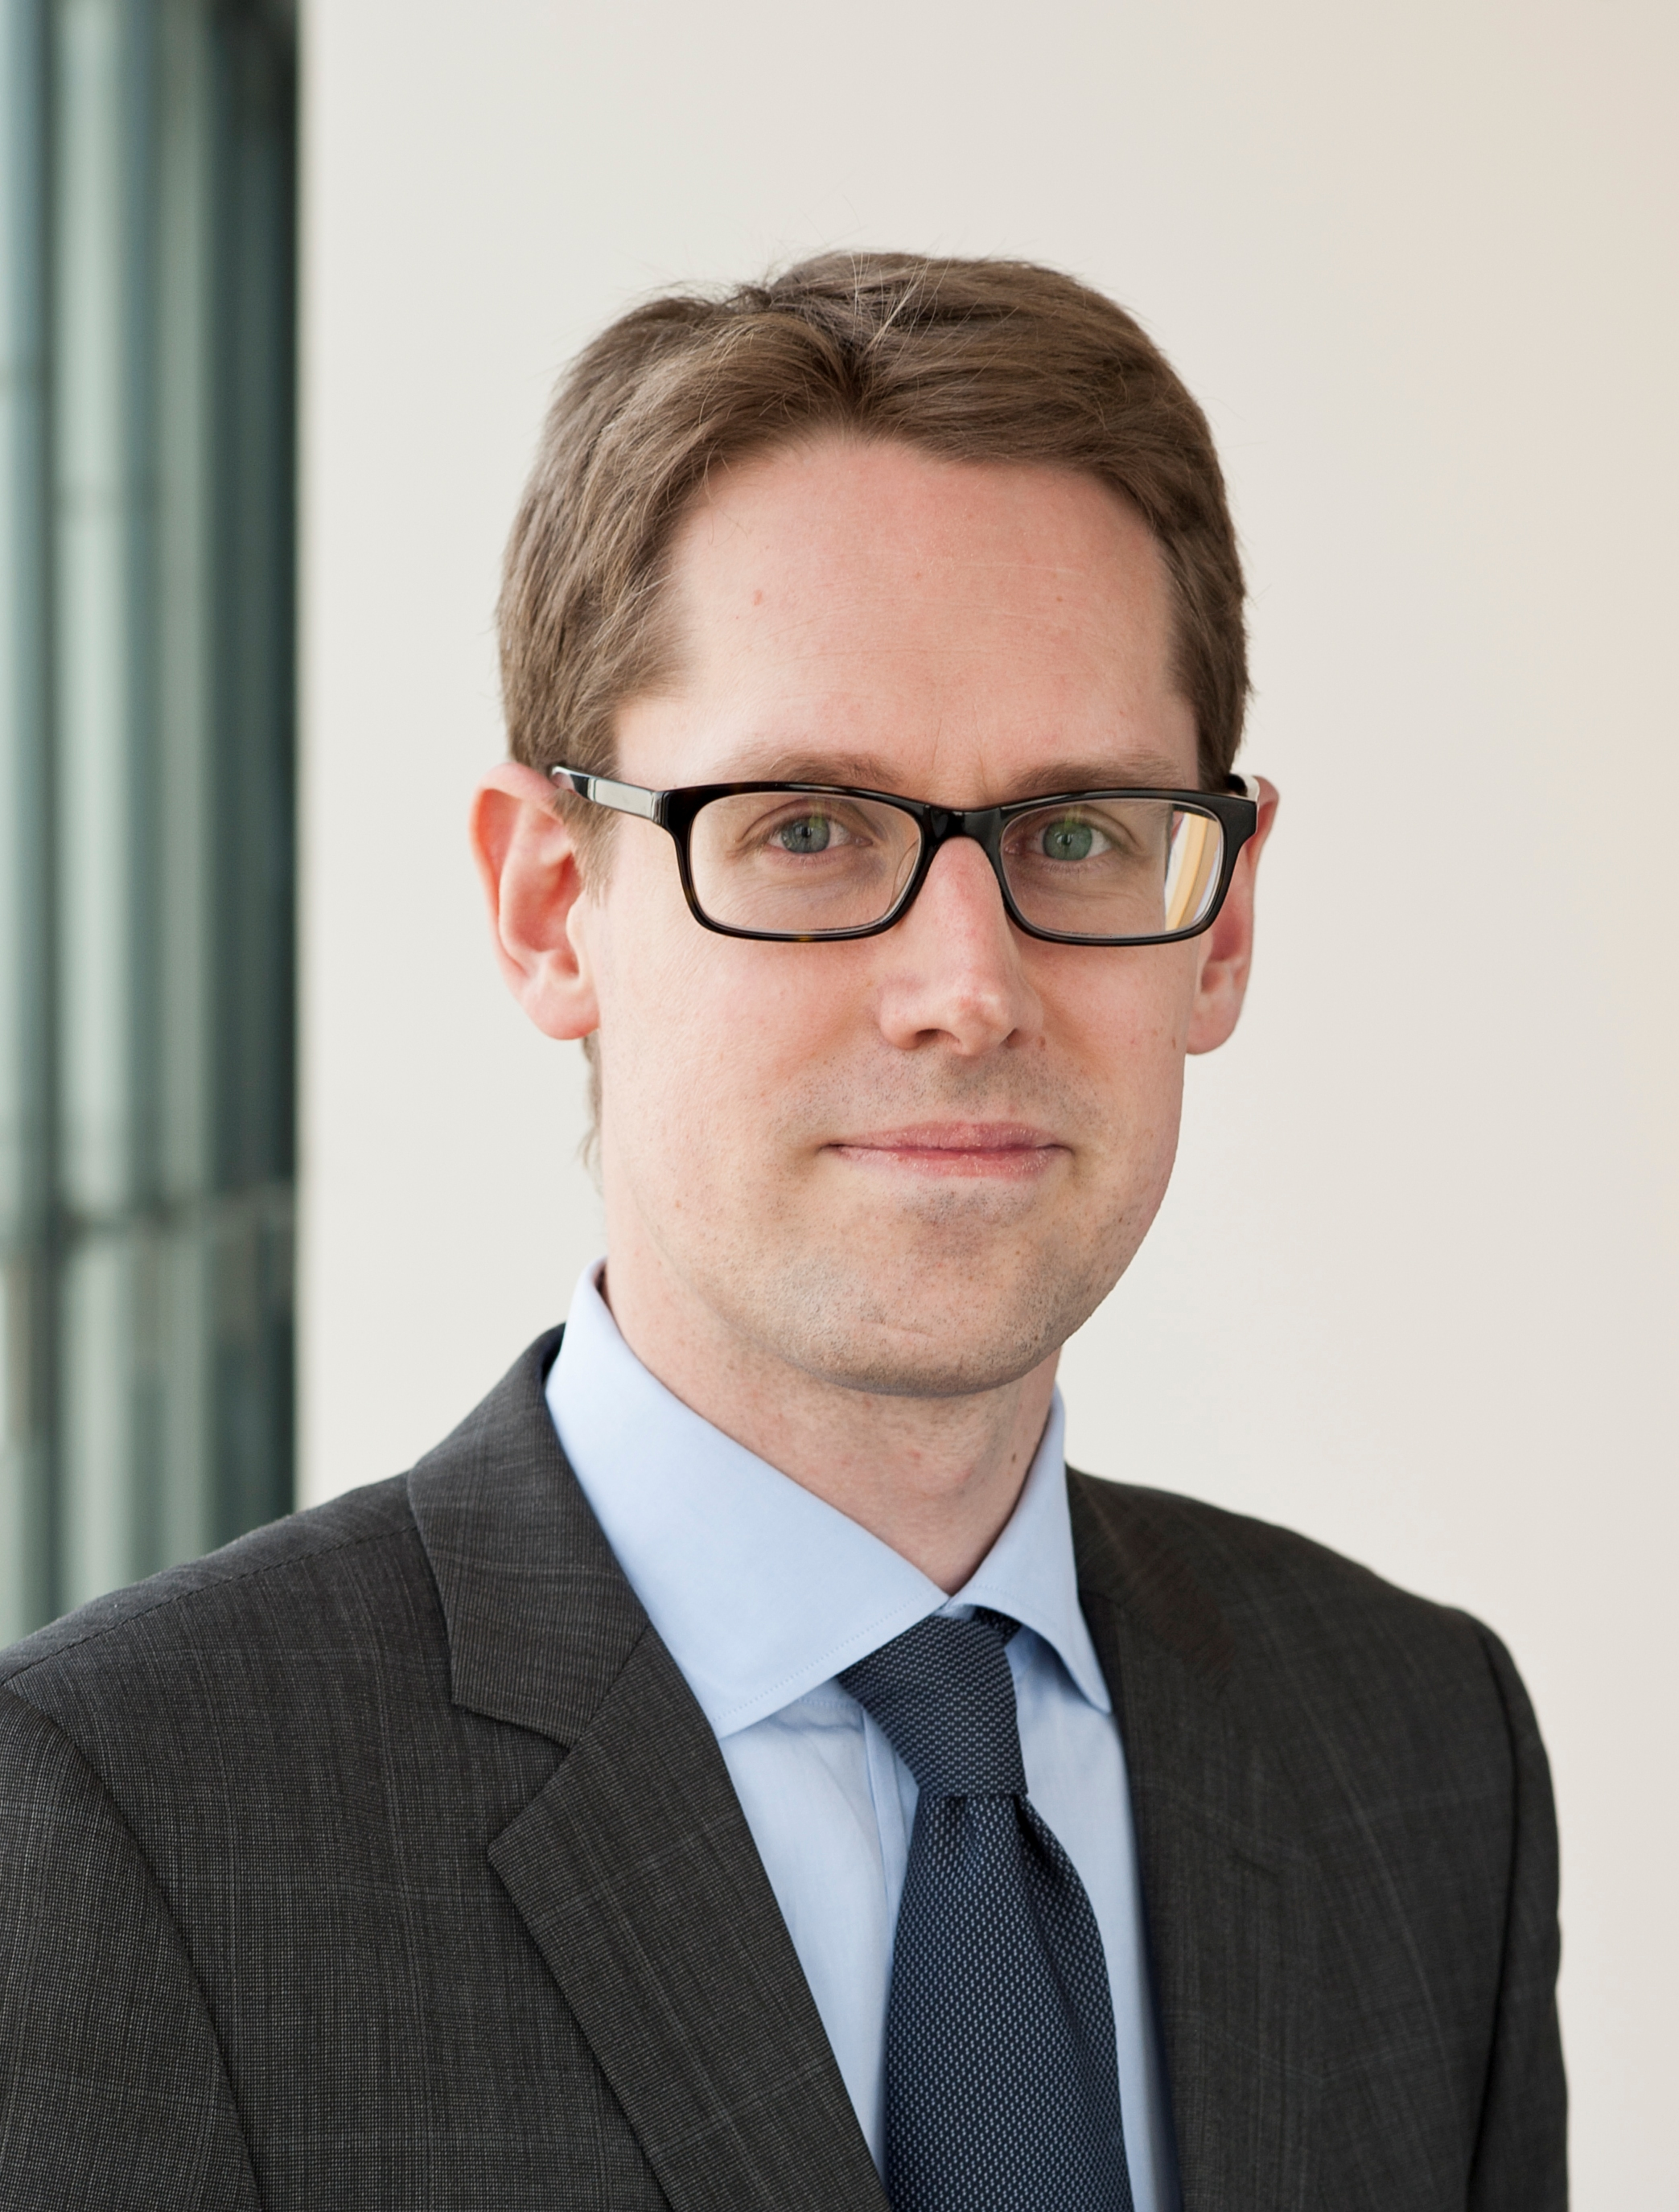 RA Dr. Patrick Oliver Nordhues, PricewaterhouseCoopers Legal AG, Düsseldorf